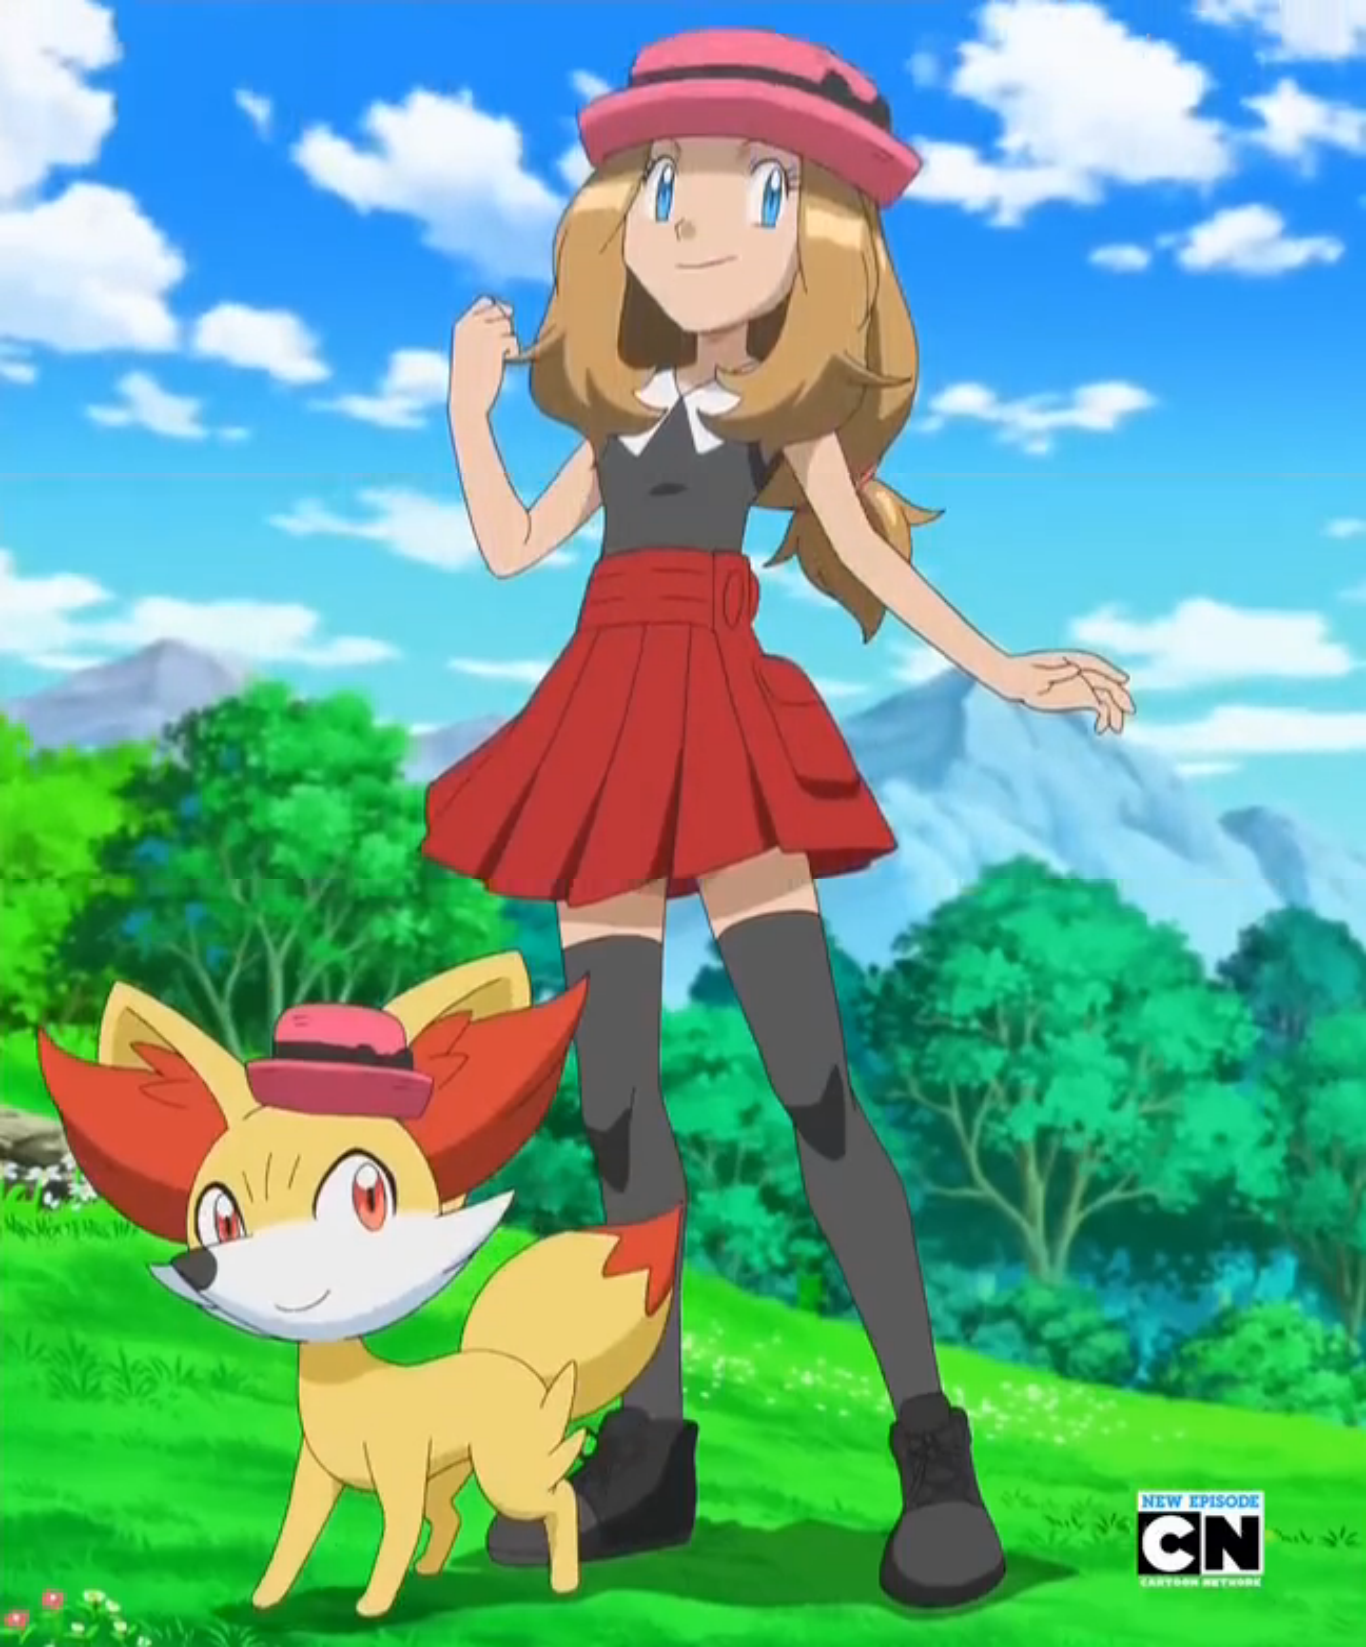 2792 best images about ️『Serena』 ️ on Pinterest | So ... |Pokemon Serena Gts